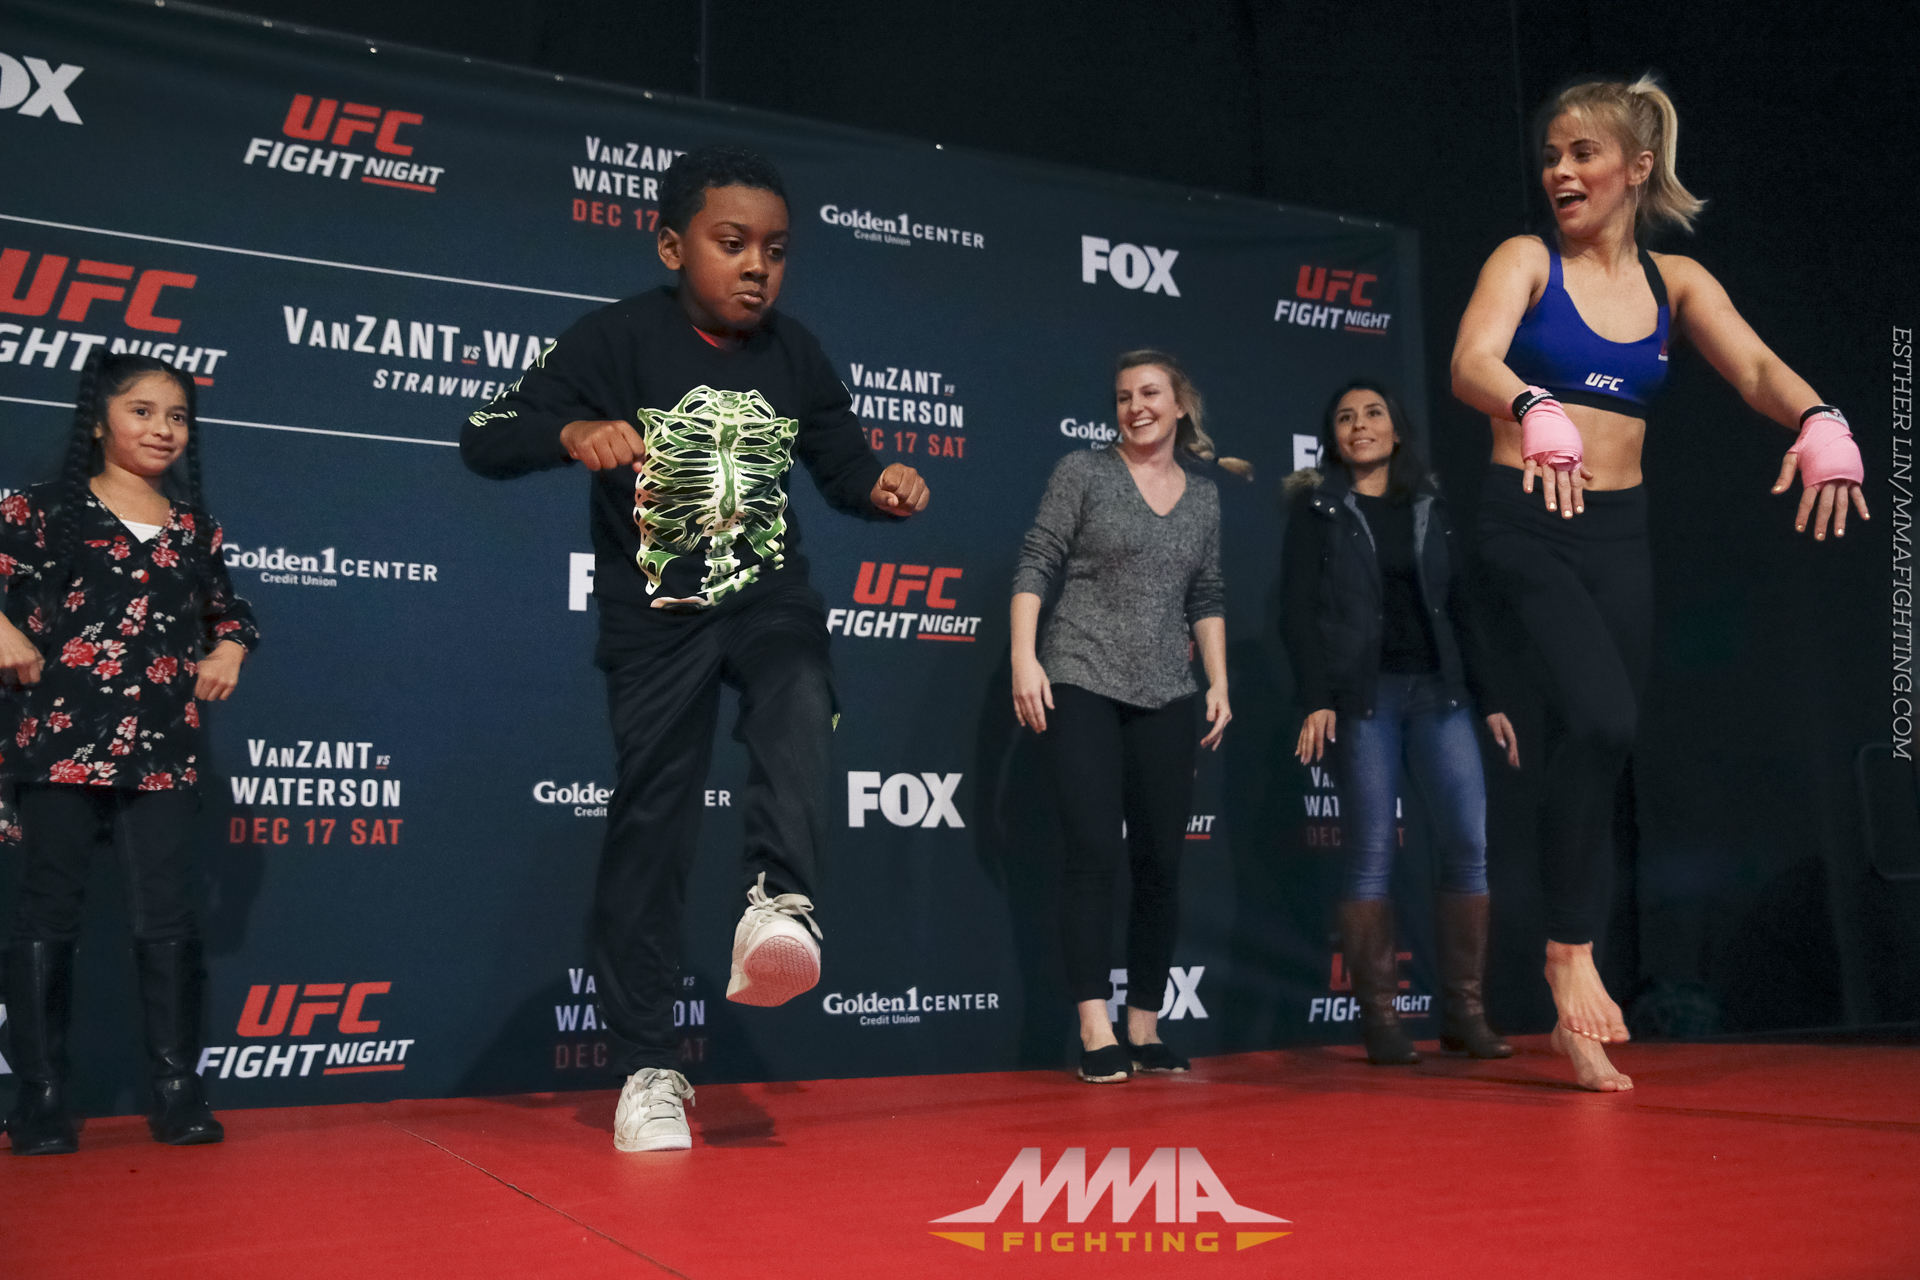 Ufc On Fox 22 Open Workout Photos Paige Vanzant Hosts An Impromptu Dance Contest During The Workouts At Golden 1 Center In Sacramento